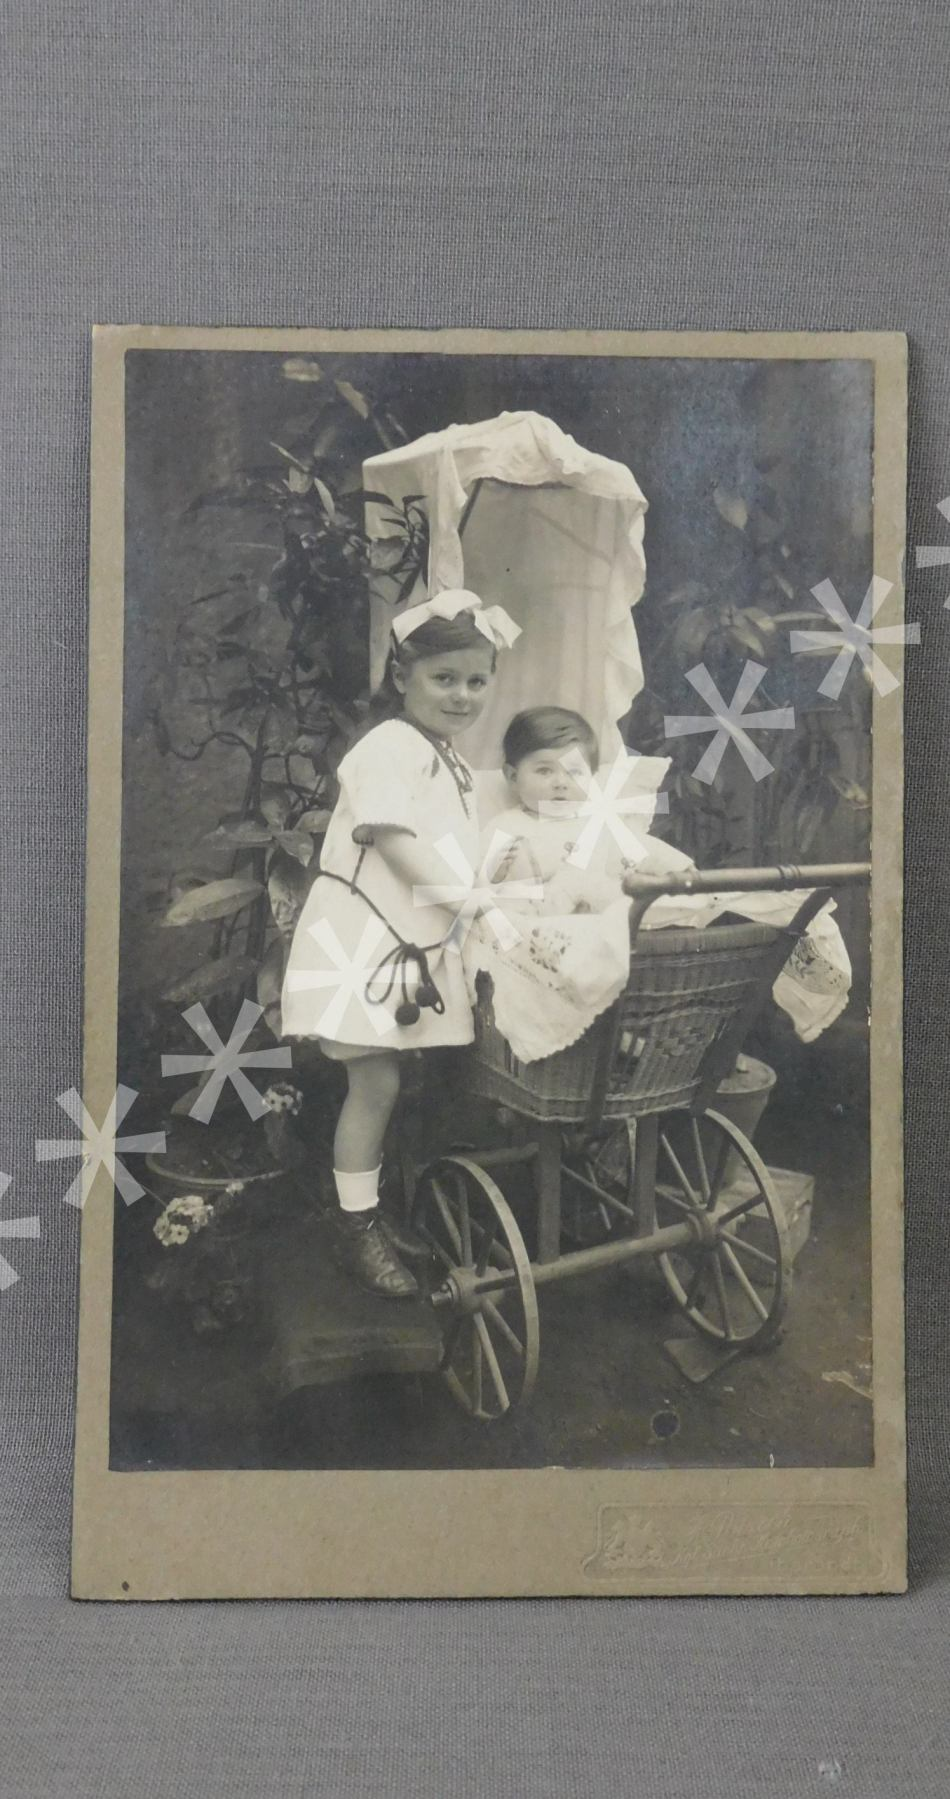 Vintage Little Girl and Baby in Carriage with Pull Toy, Cabinet Card Photo 1900s, Photograph